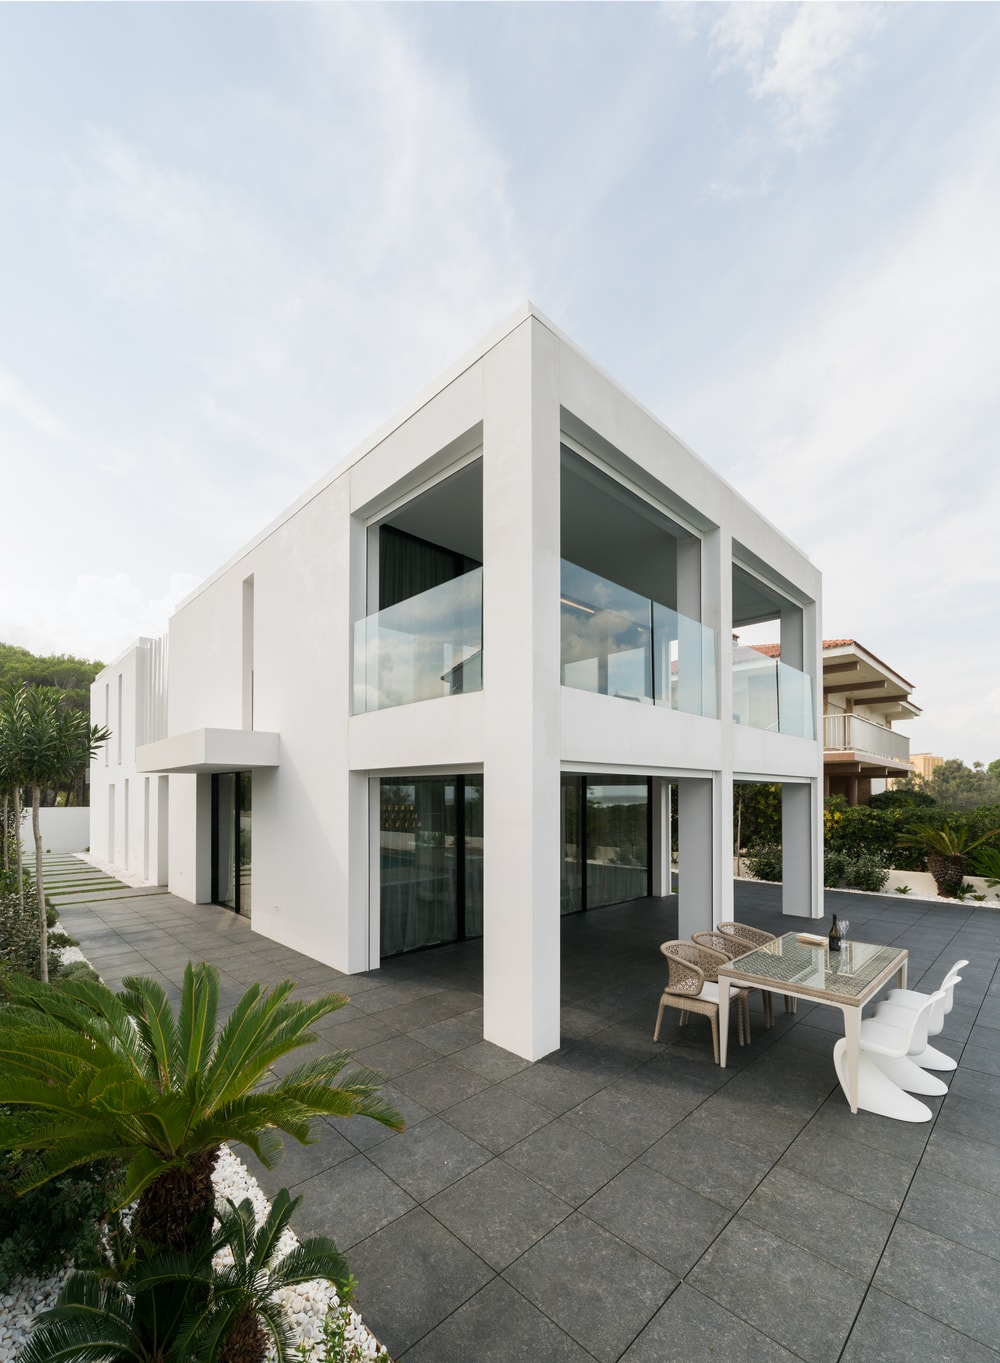 This look of the back of the house showcases the large balcony of the second level with glass railings for safety and aesthetics.